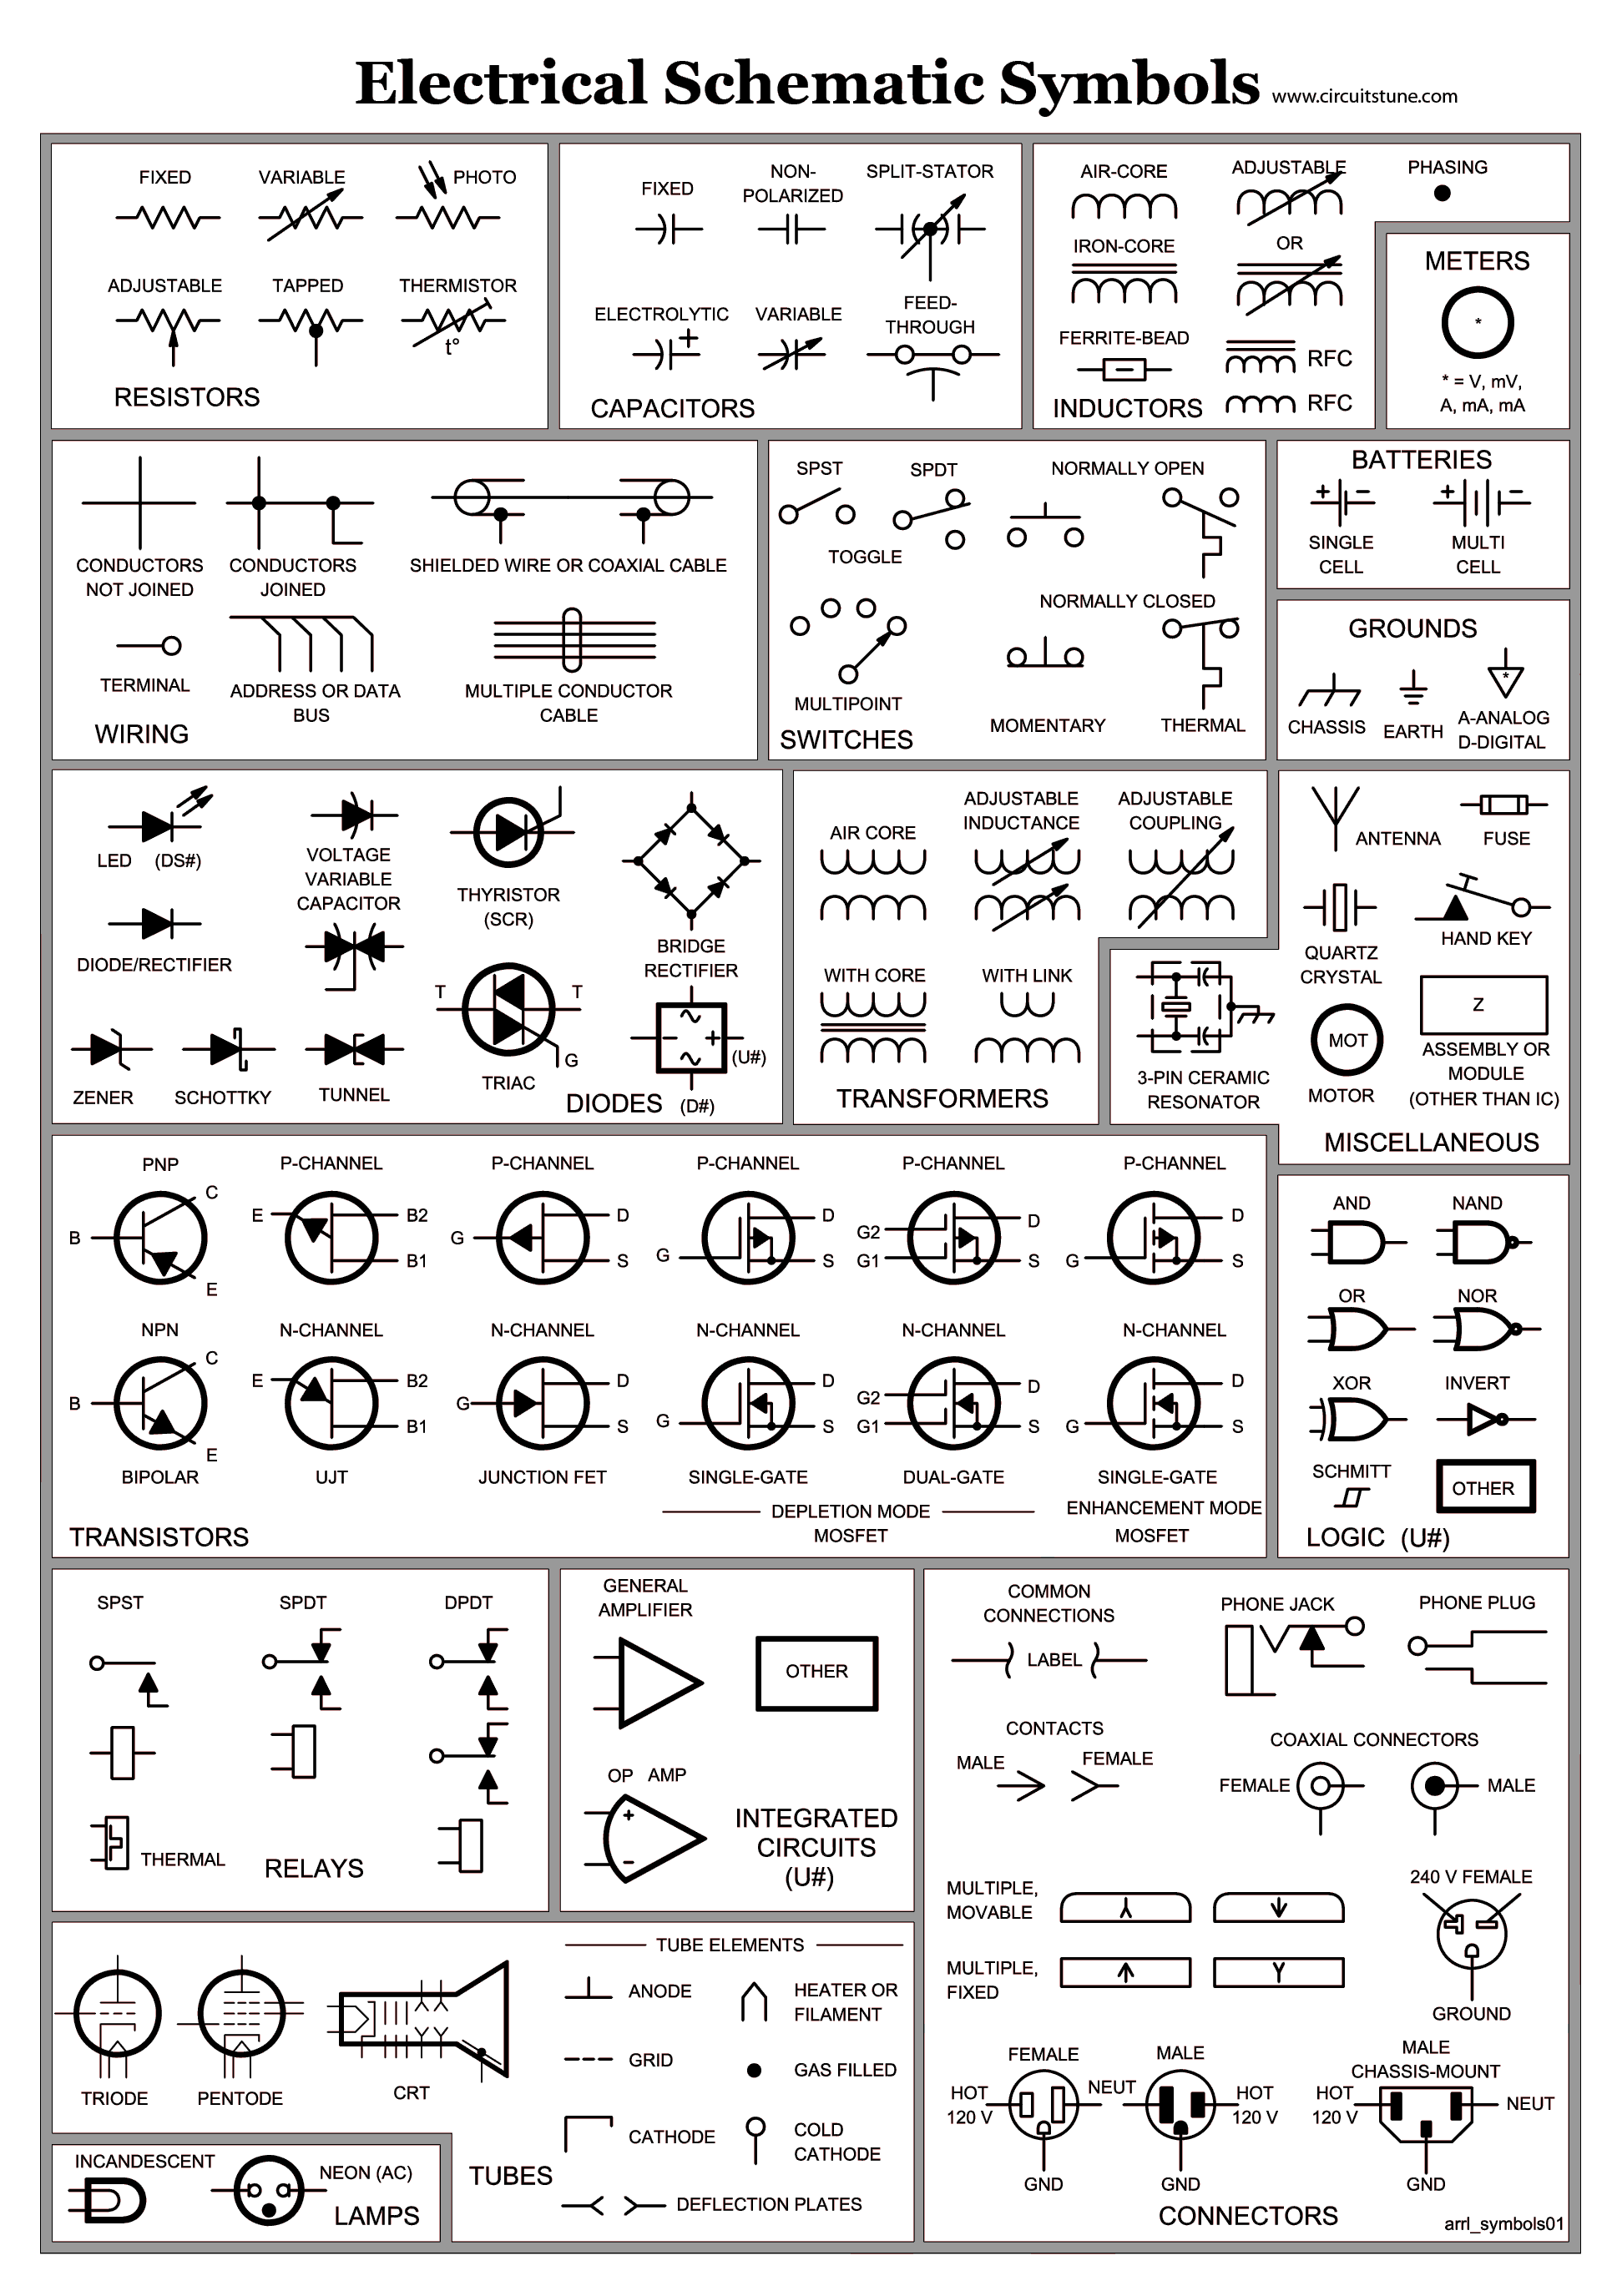 electrical schematic symbols skinsquiggles electrical symbols rh pinterest com electrical wiring diagram symbols in autocad electrical wiring diagram symbols fuse